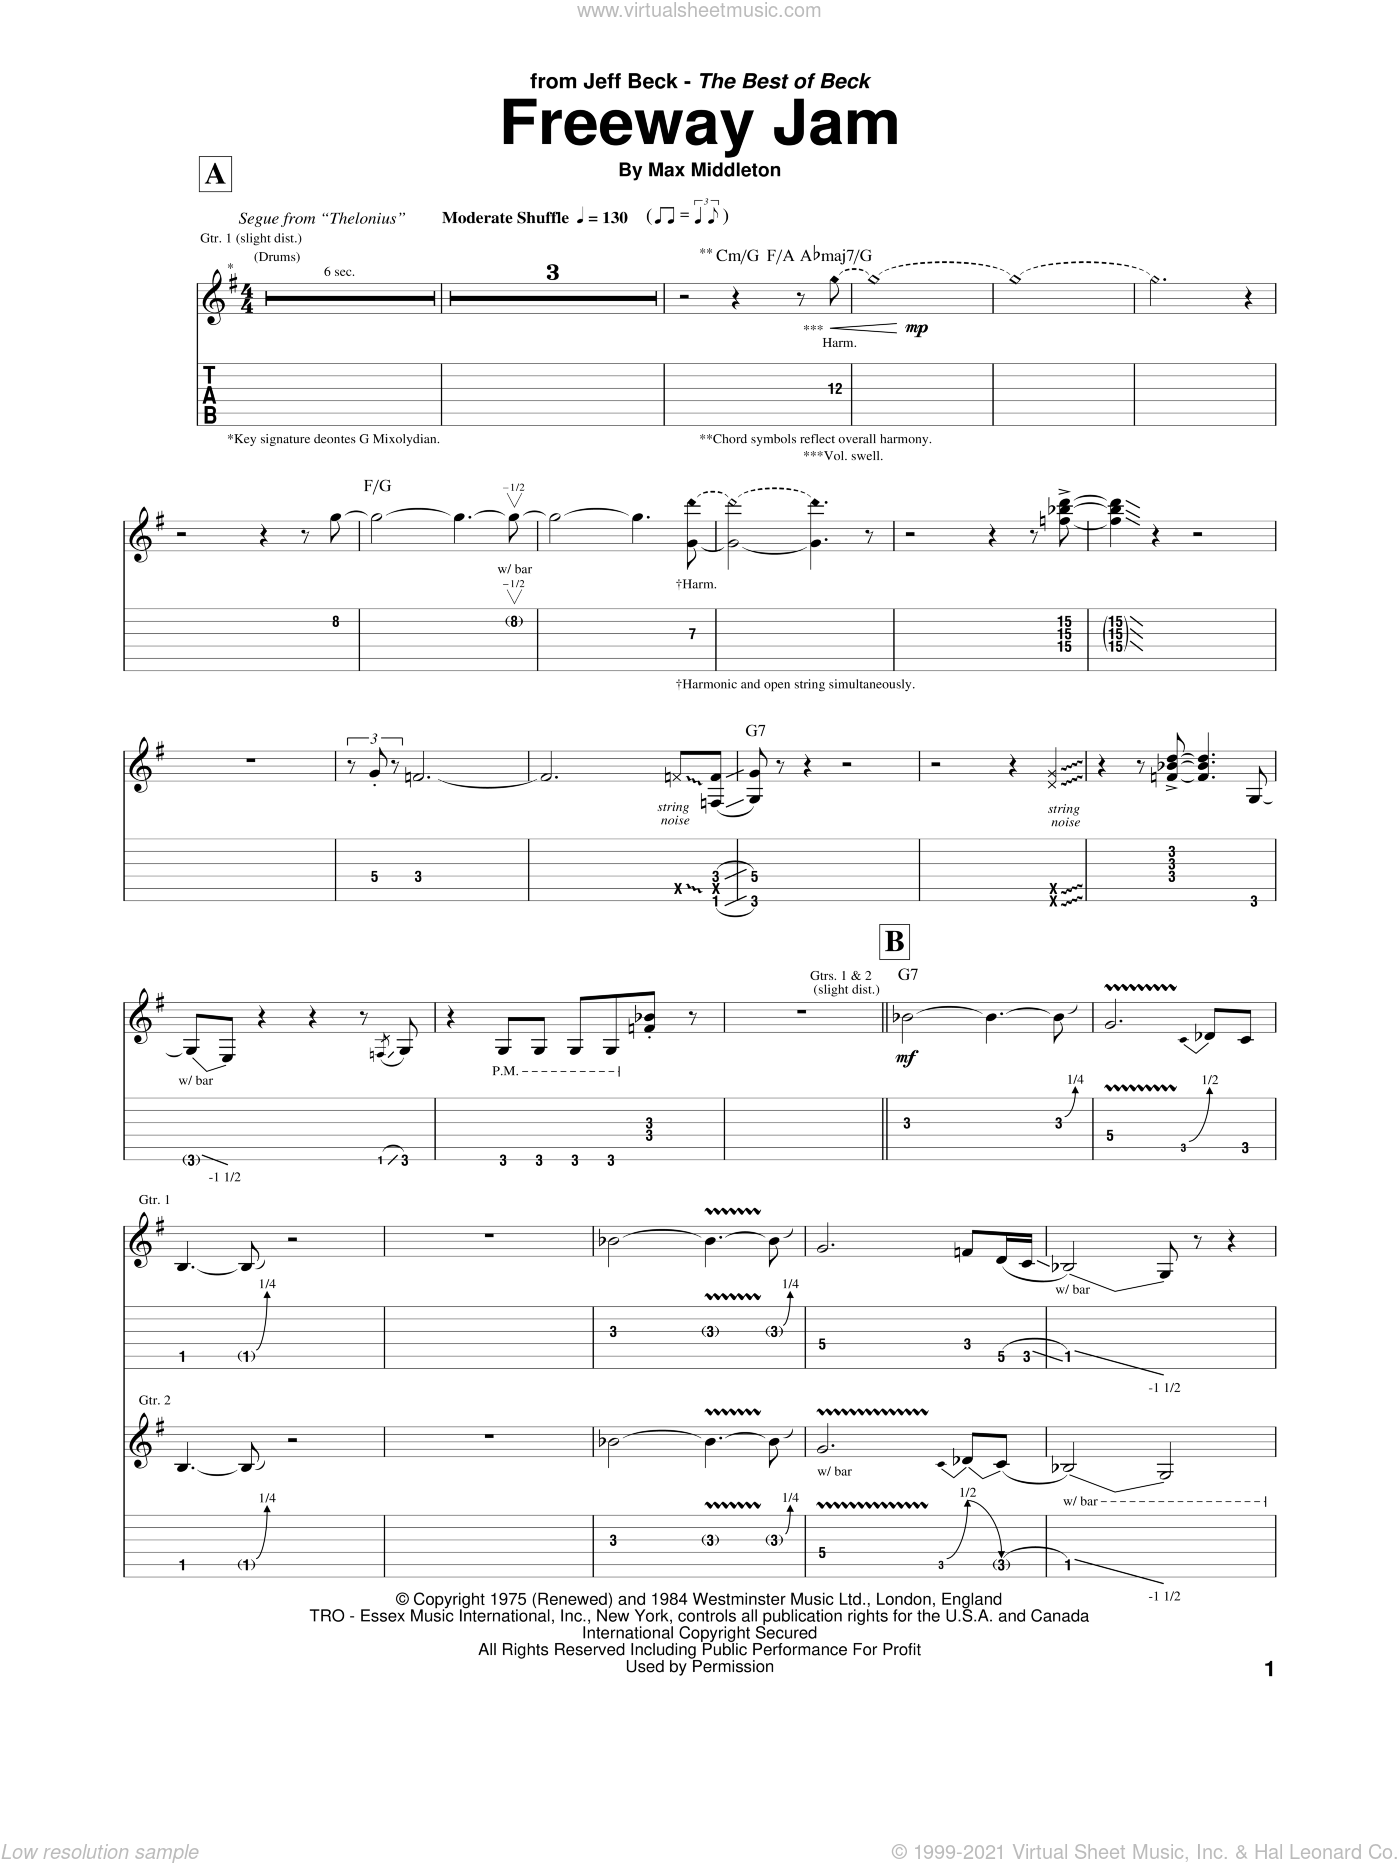 Freeway Jam sheet music for guitar (tablature) by Jeff Beck